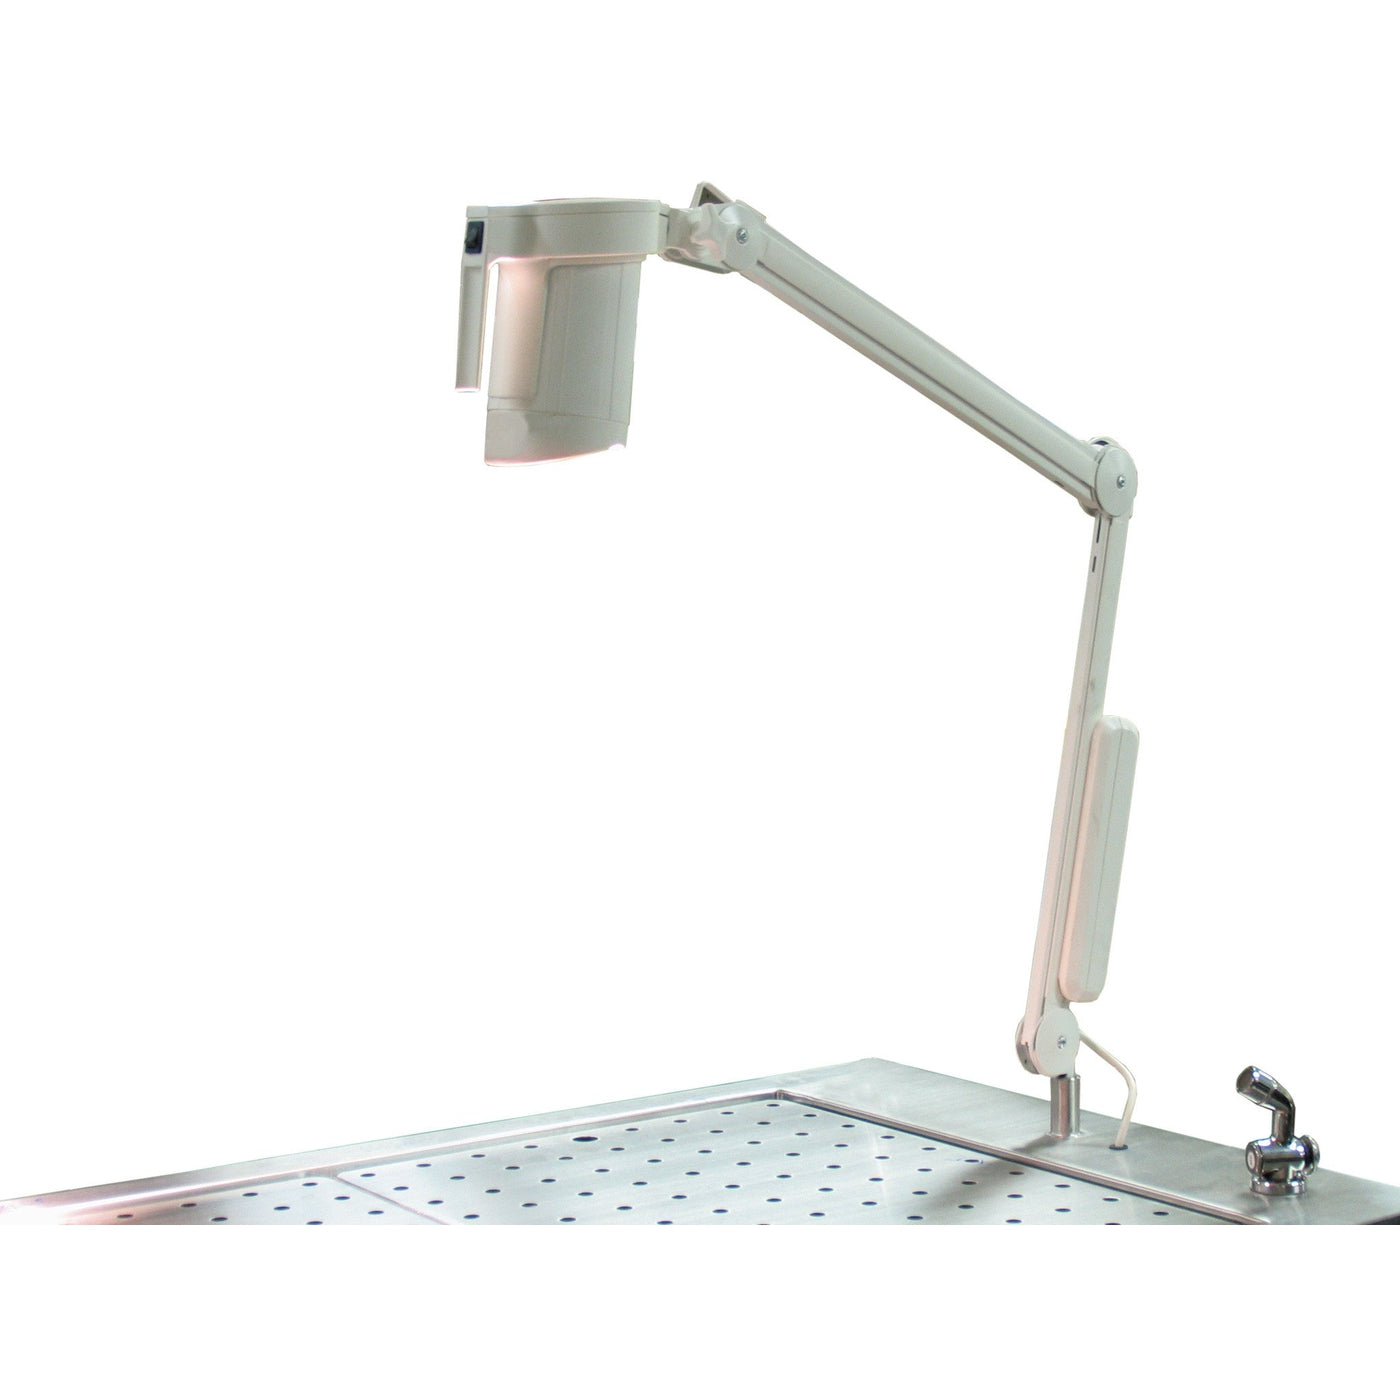 Surgical Light - SLSE50-Laboratory Accessory-Mortech Manufacturing Company Inc. Quality Stainless Steel Autopsy, Morgue, Funeral Home, Necropsy, Veterinary / Anatomy, Dissection Equipment and Accessories